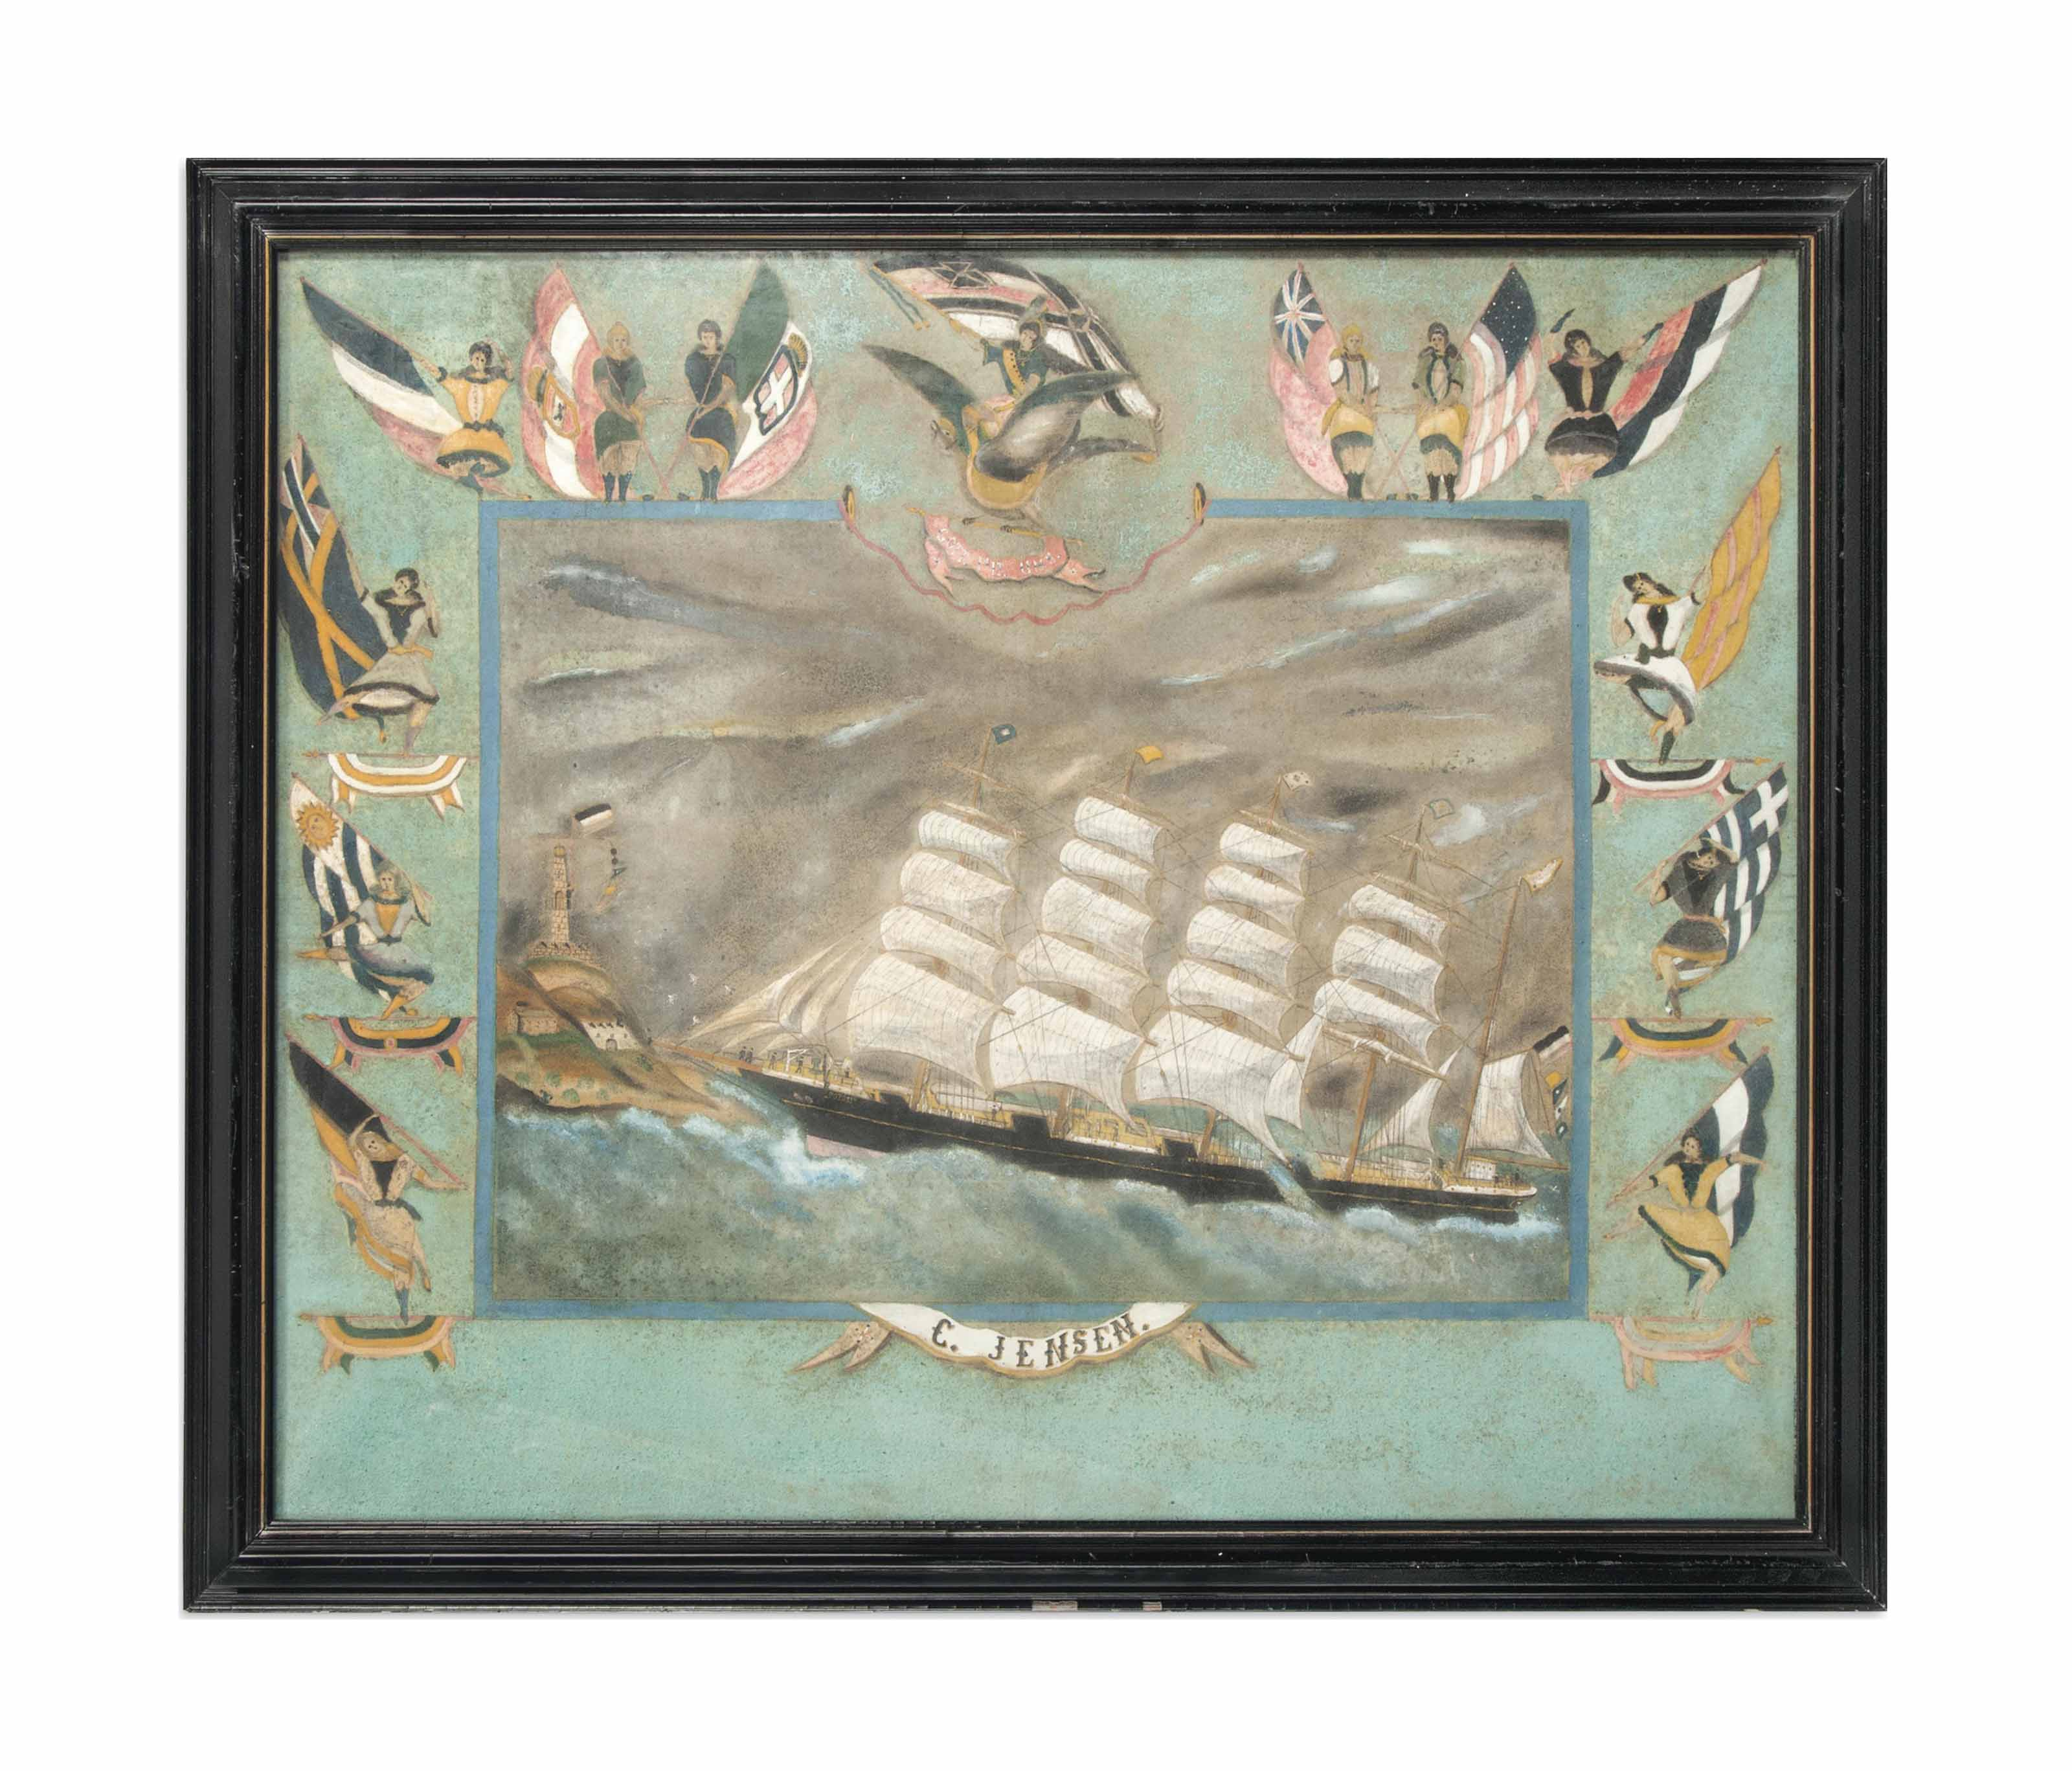 AN OIL ON CANVAS OF A SHIP 'TH